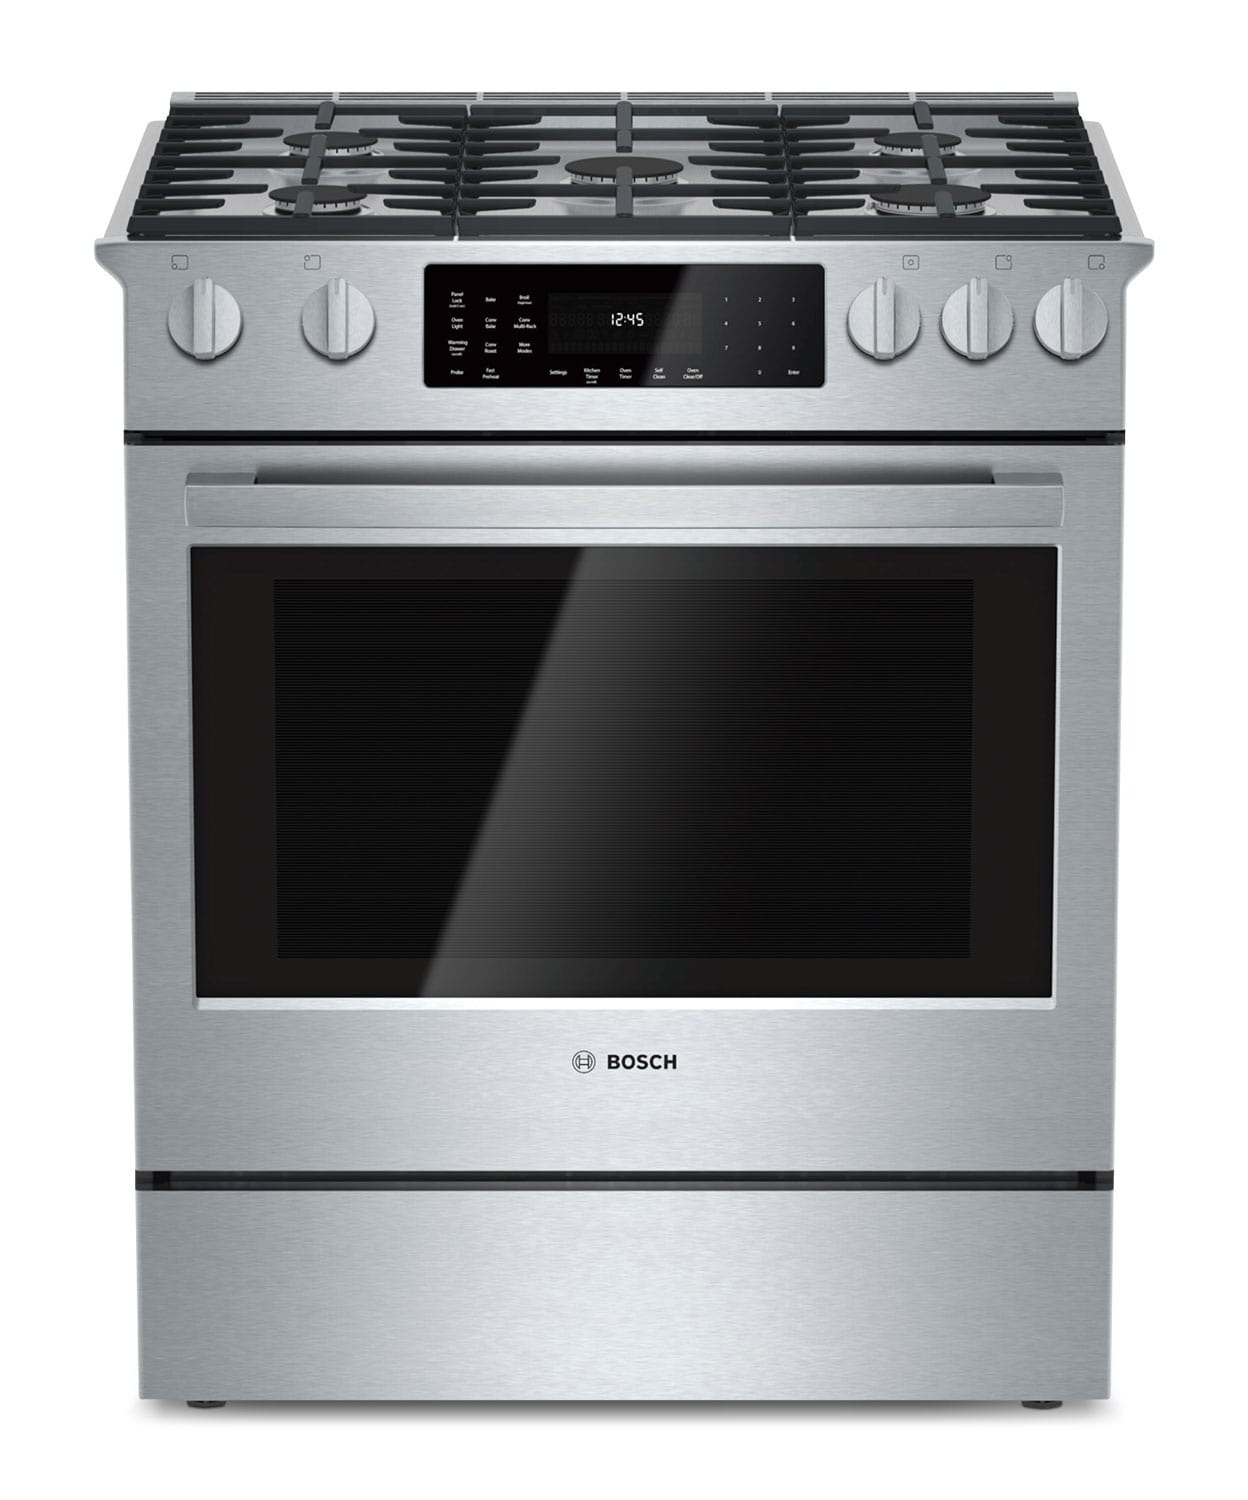 Cooking Products - Bosch 800 Series 4.6 Cu. Ft. Slide-In Dual-Fuel Range – HDI8054C